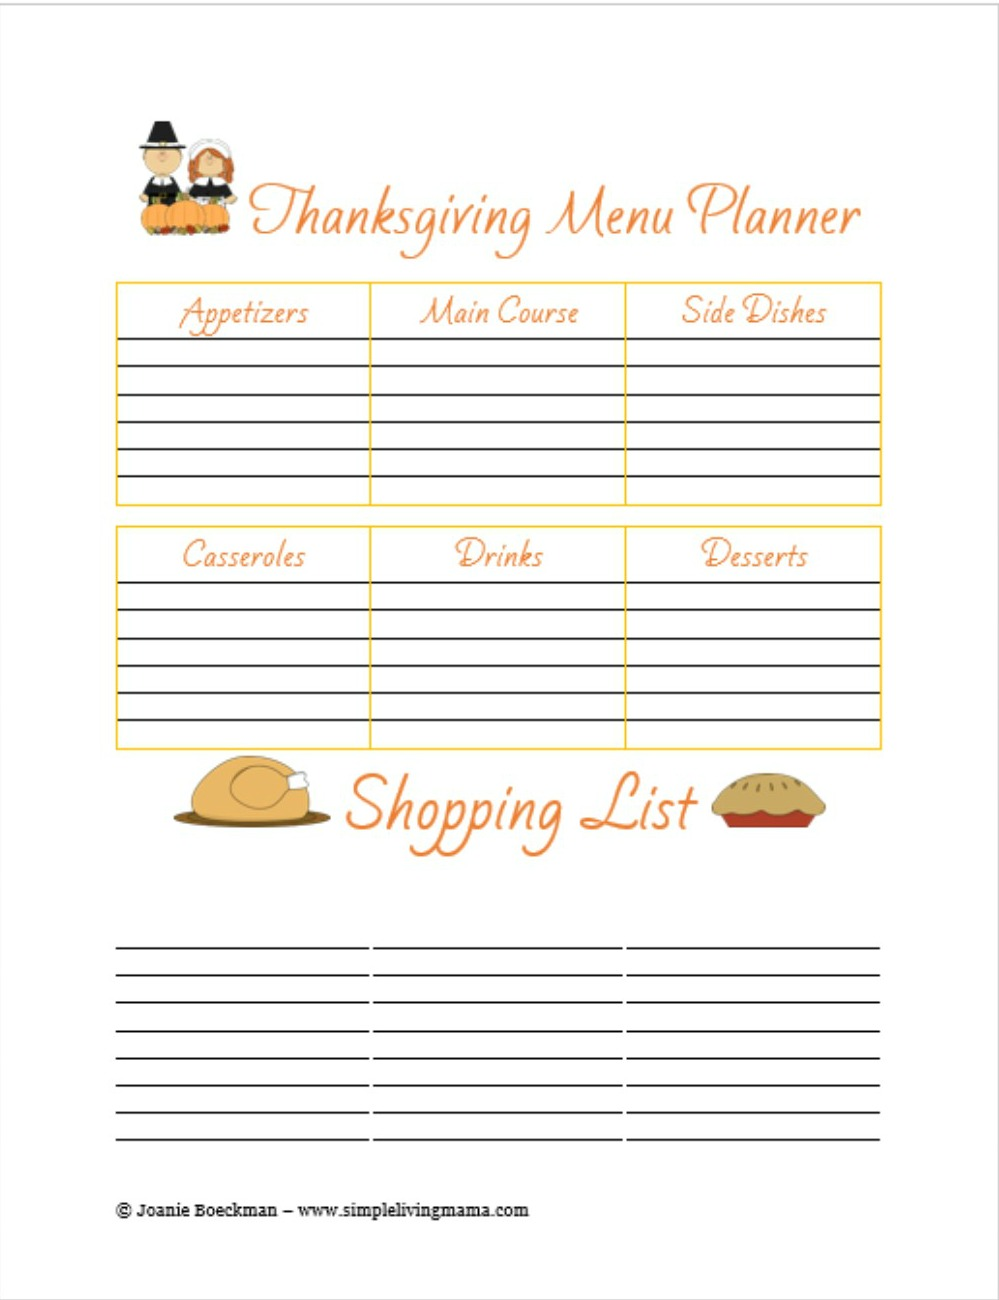 picture about Thanksgiving Menu Planner Printable known as 13 Enlightening Thanksgiving Evening meal Planners